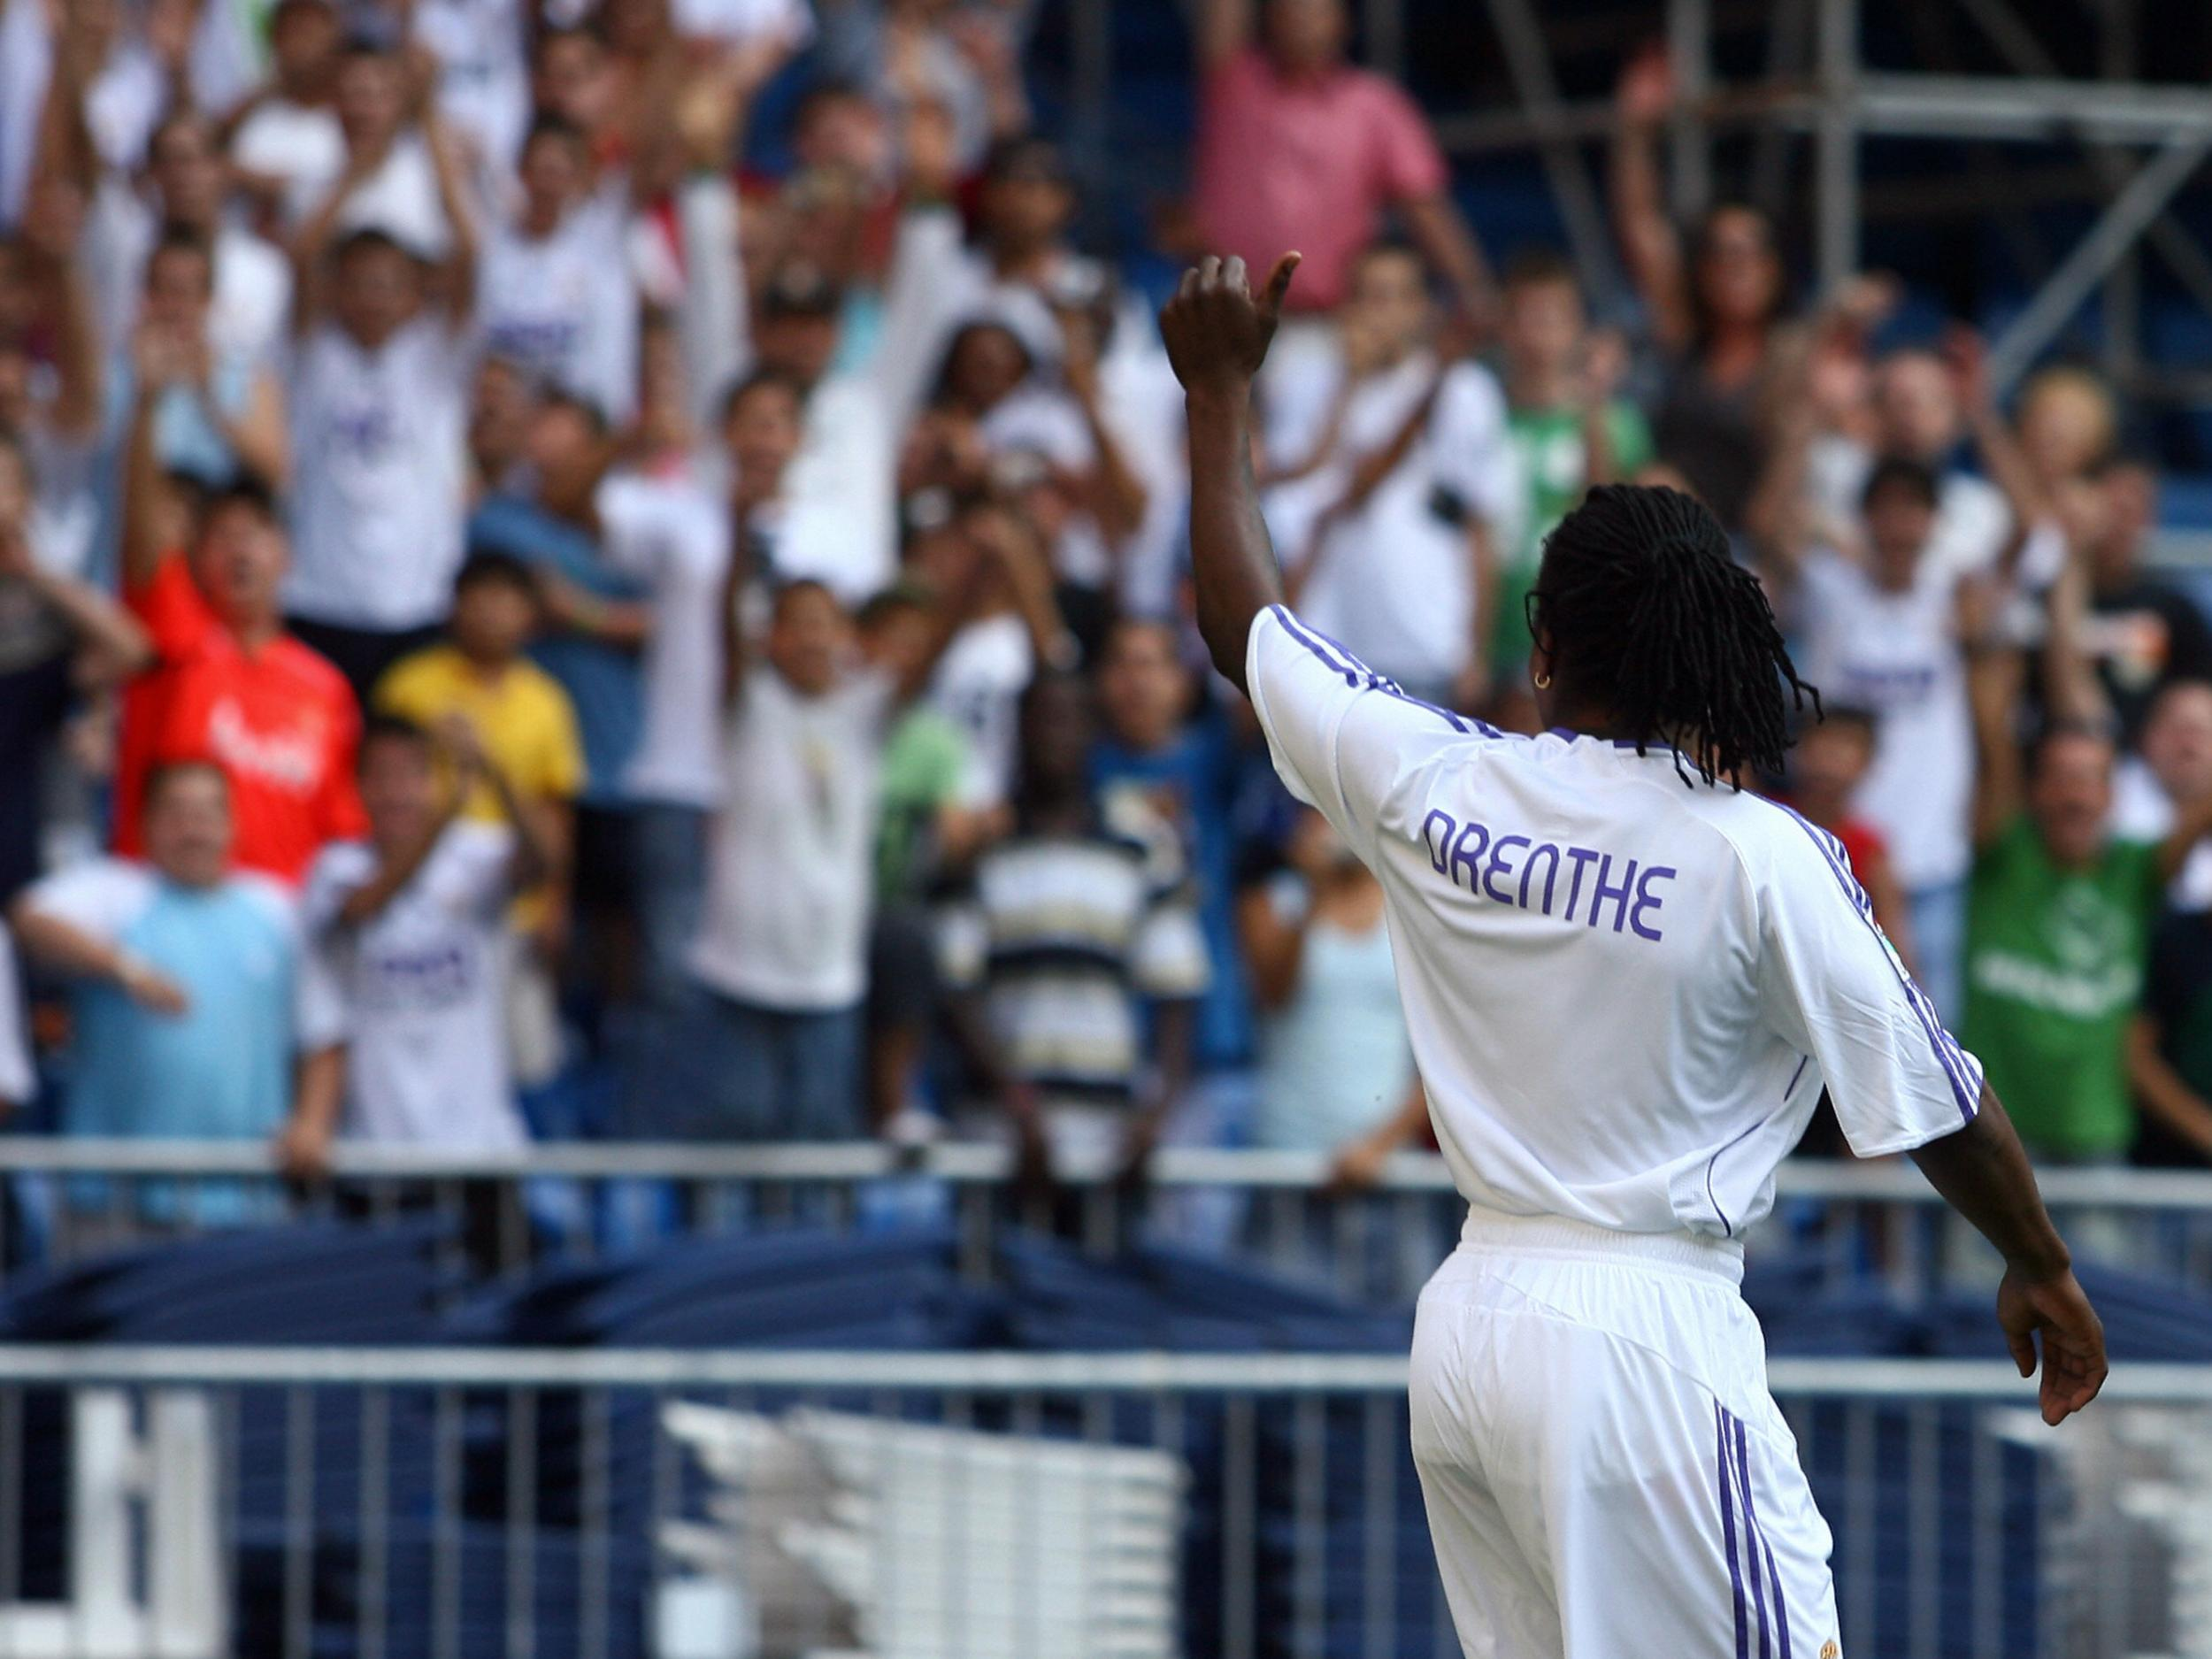 Former Real Madrid and Everton winger Royston Drenthe